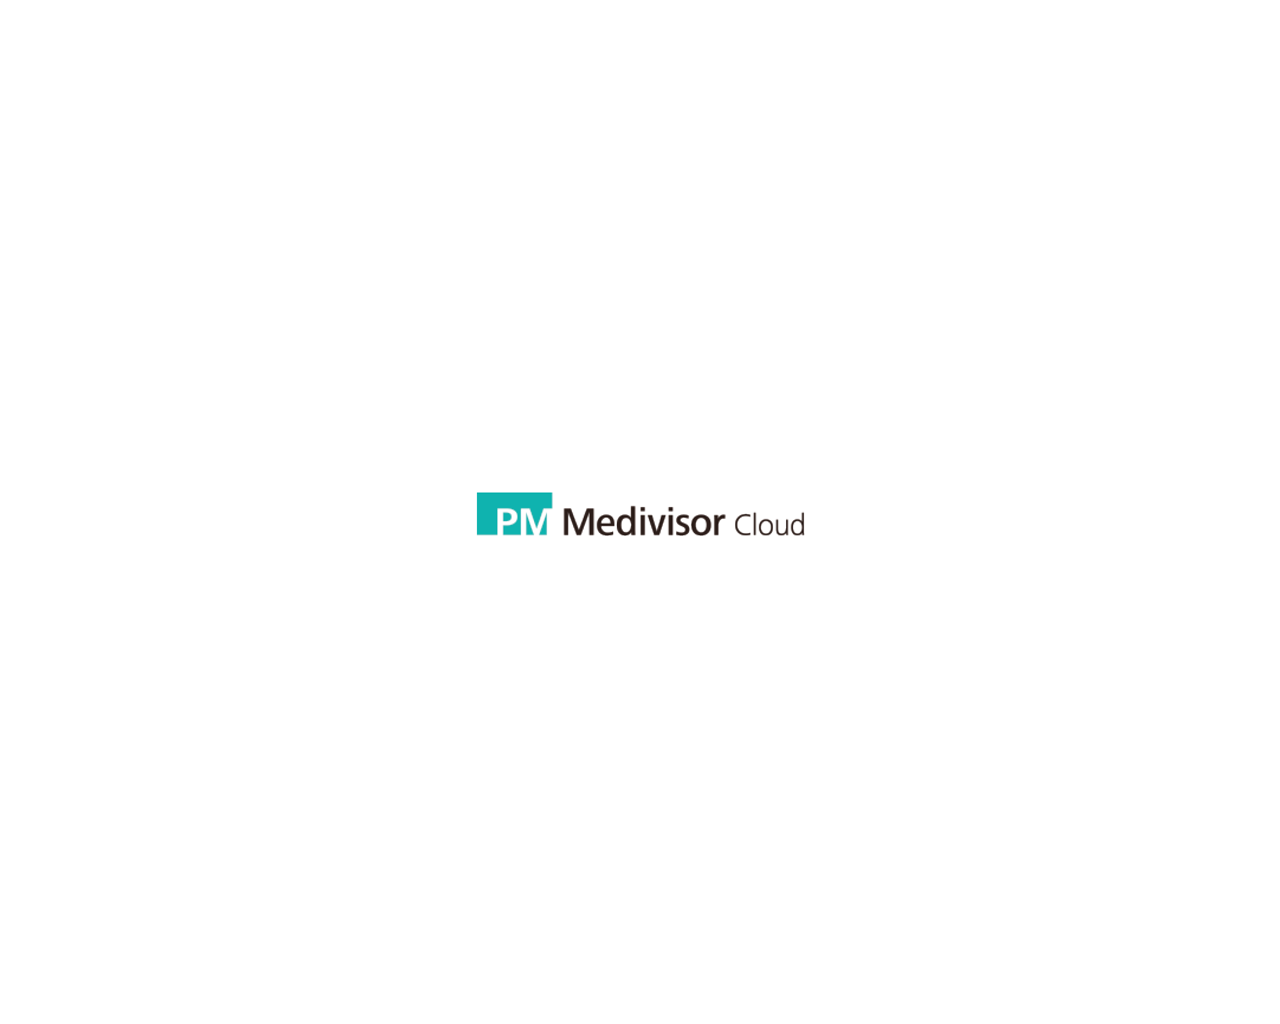 PM Medivisor Cloud